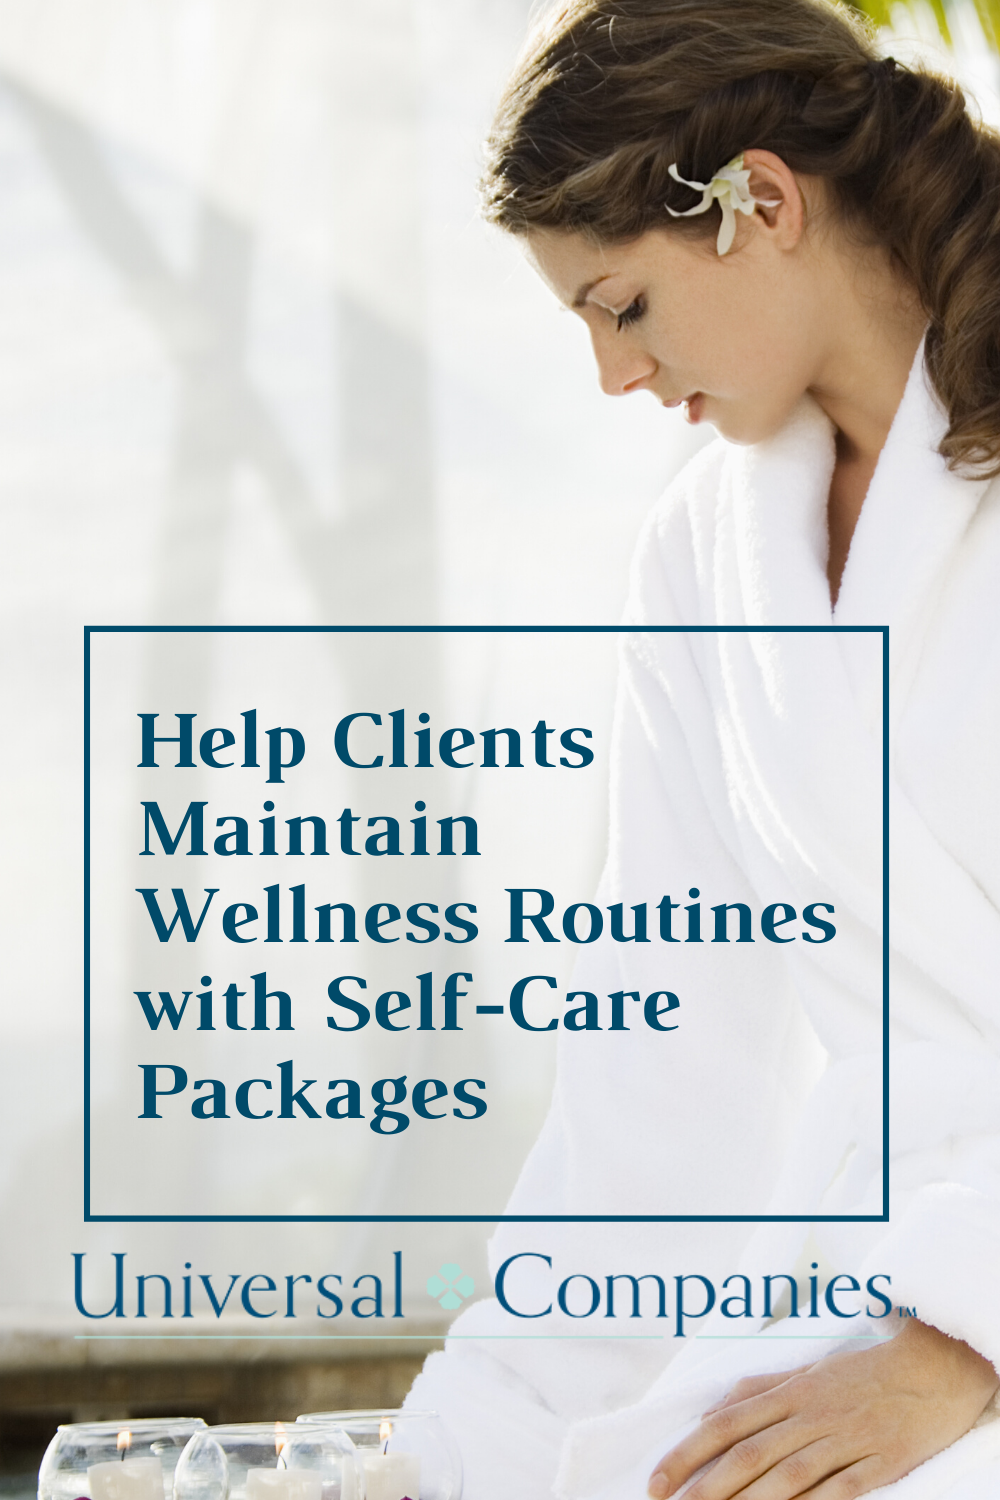 Help Clients Maintain Wellness Routines with SelfCare